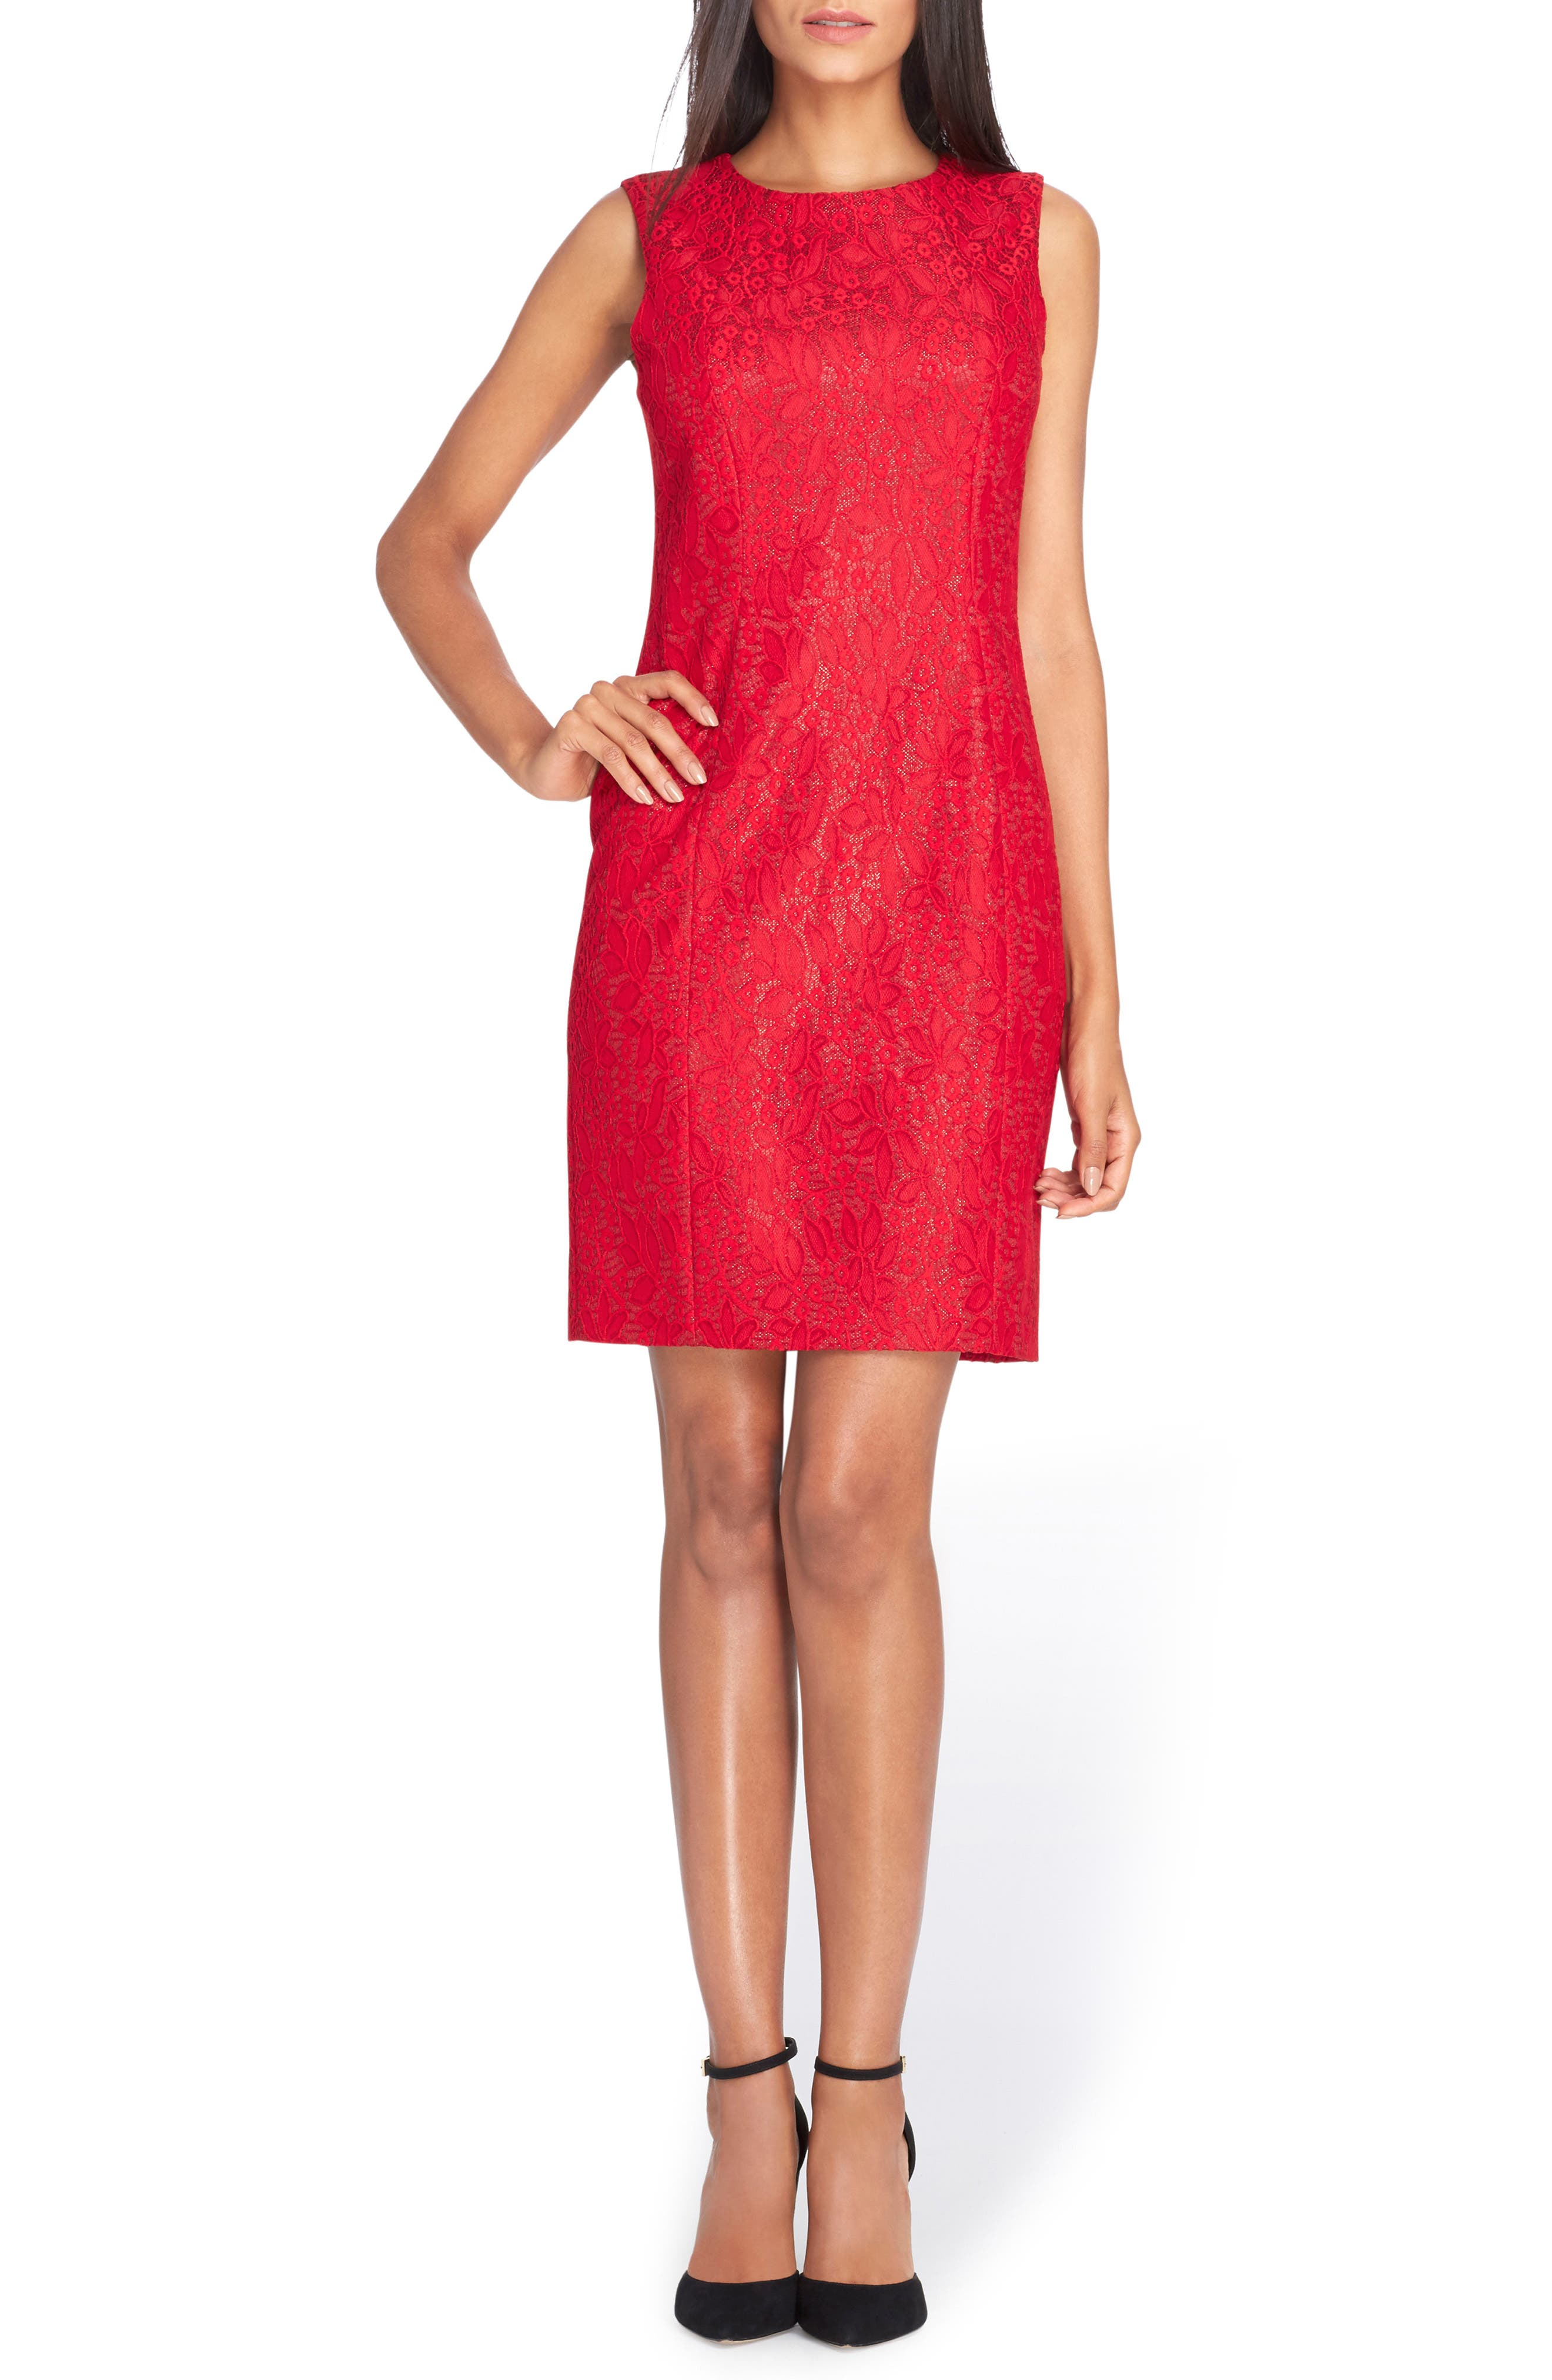 Alternate Image 1 Selected - Tahari Bonded Lace Sheath Dress (Regular & Petite)